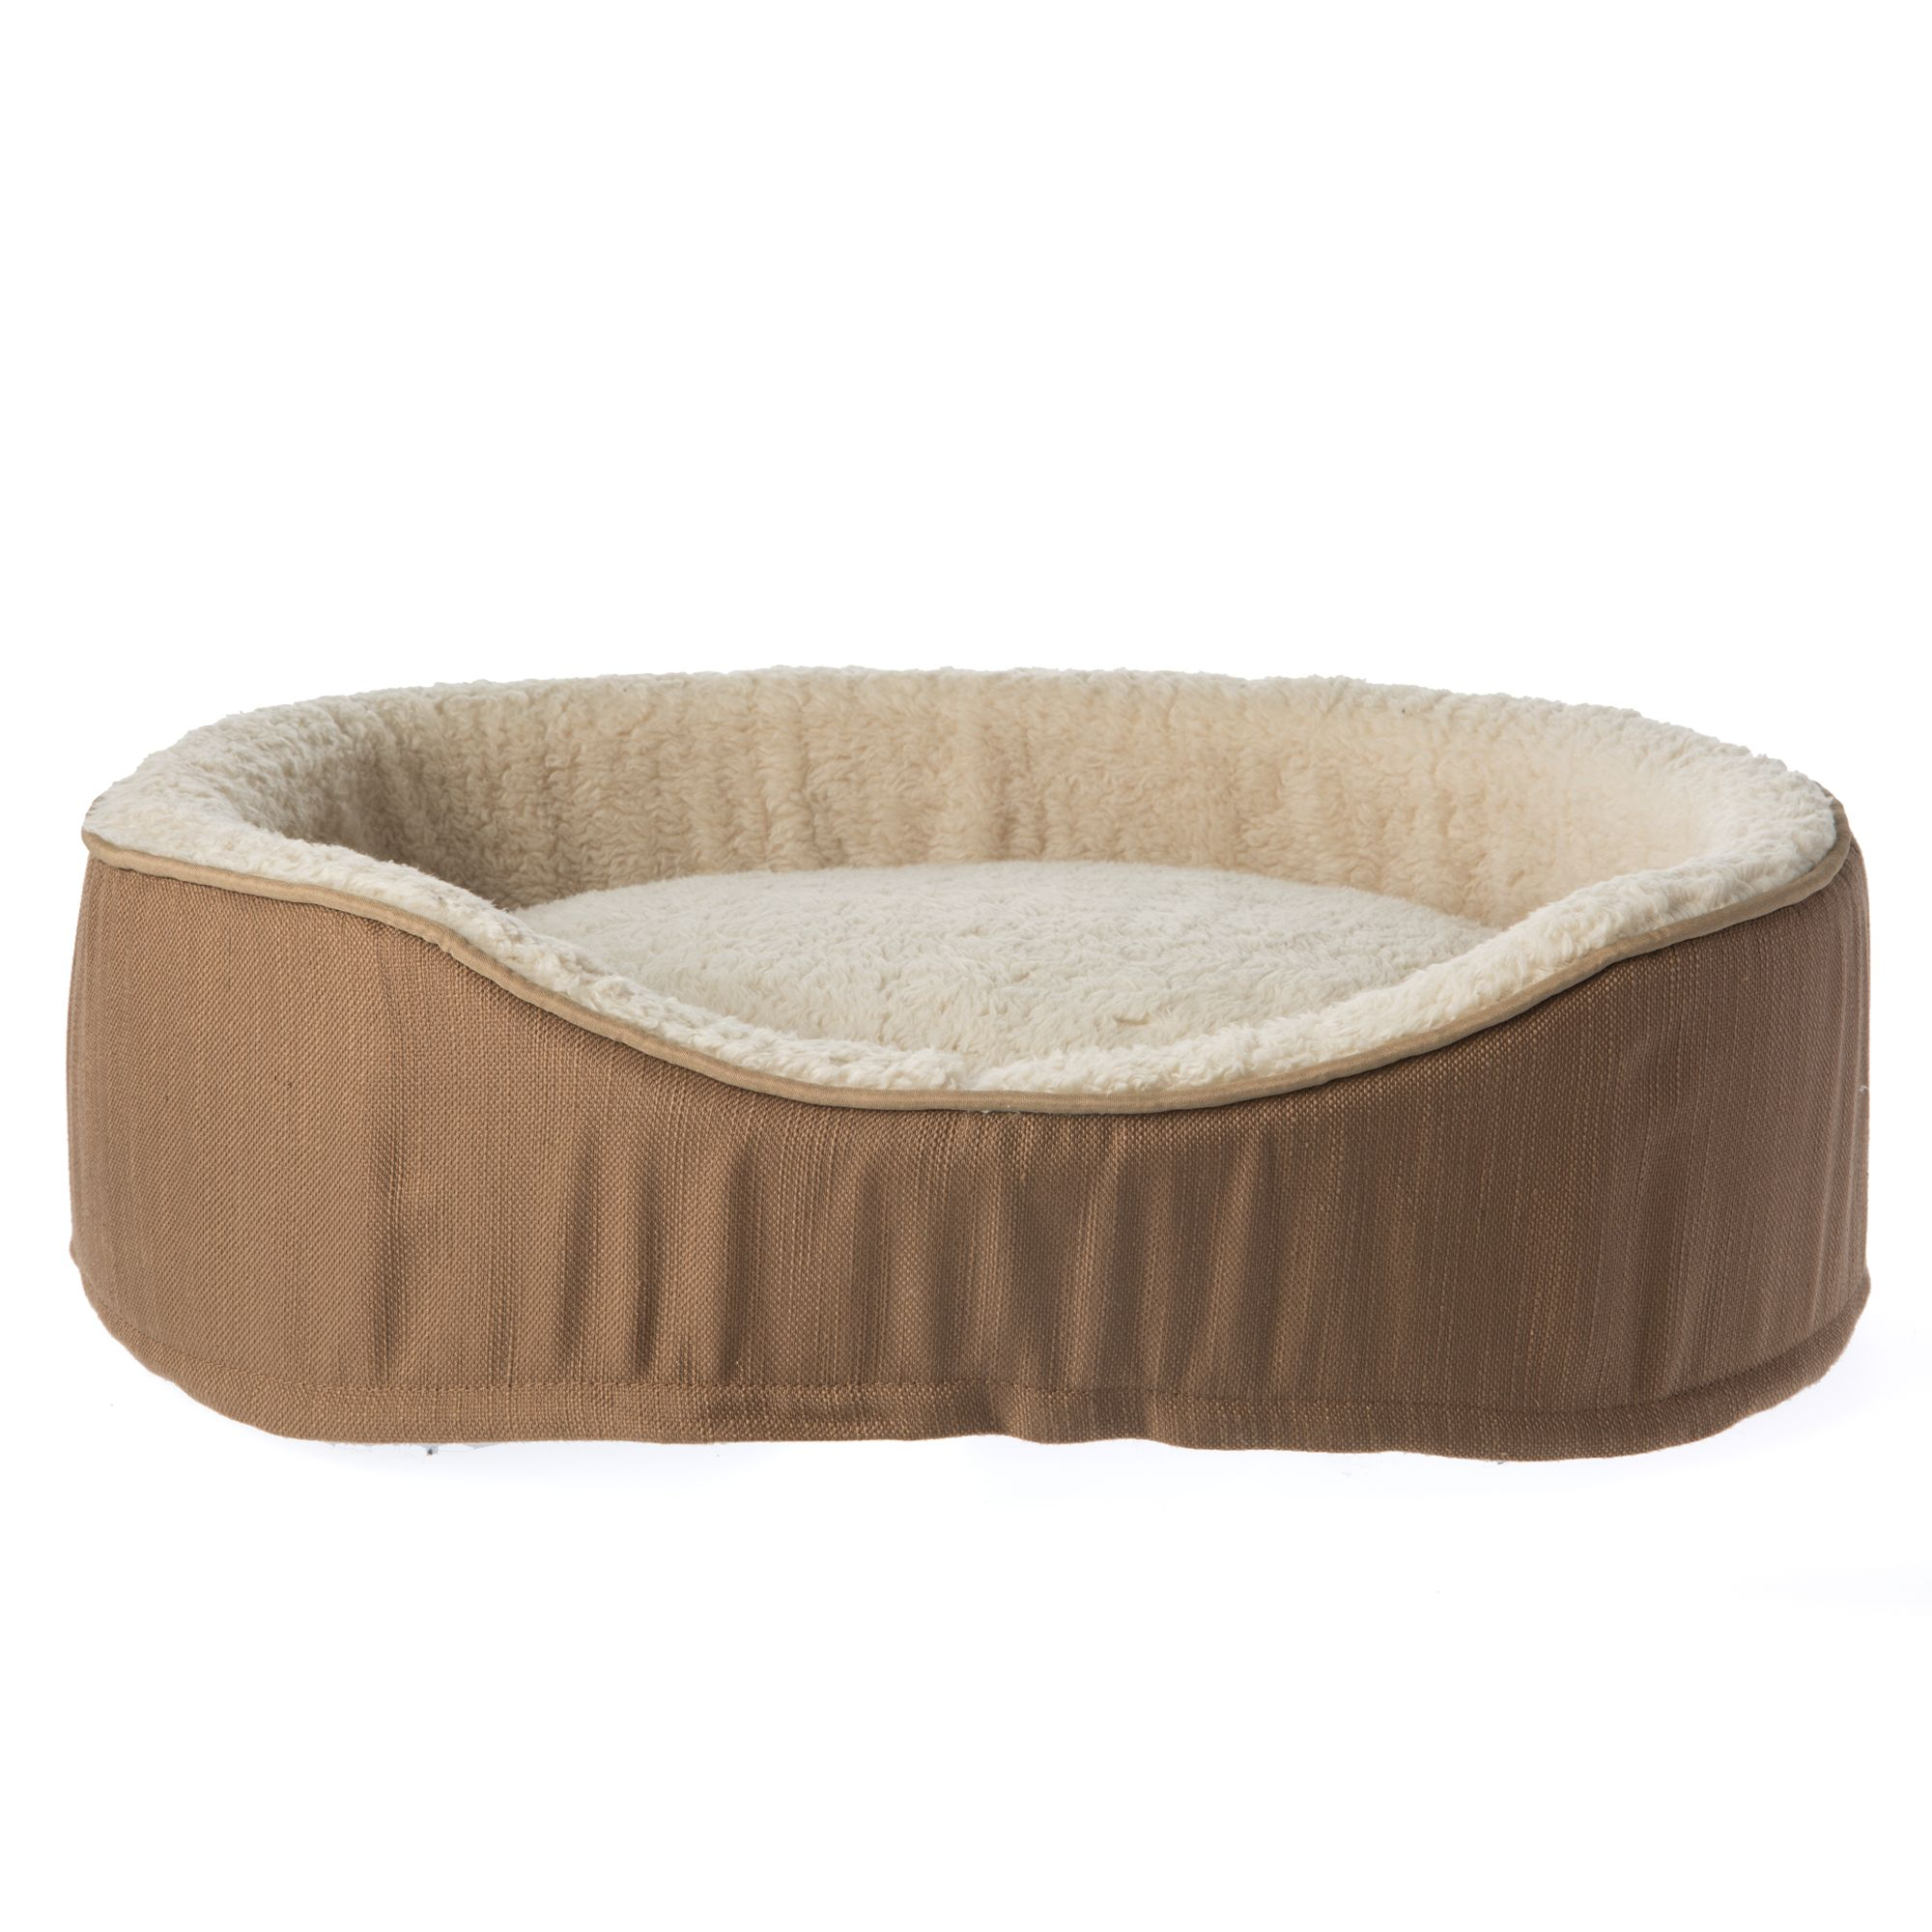 Orthopedic Dog Beds At Petsmart